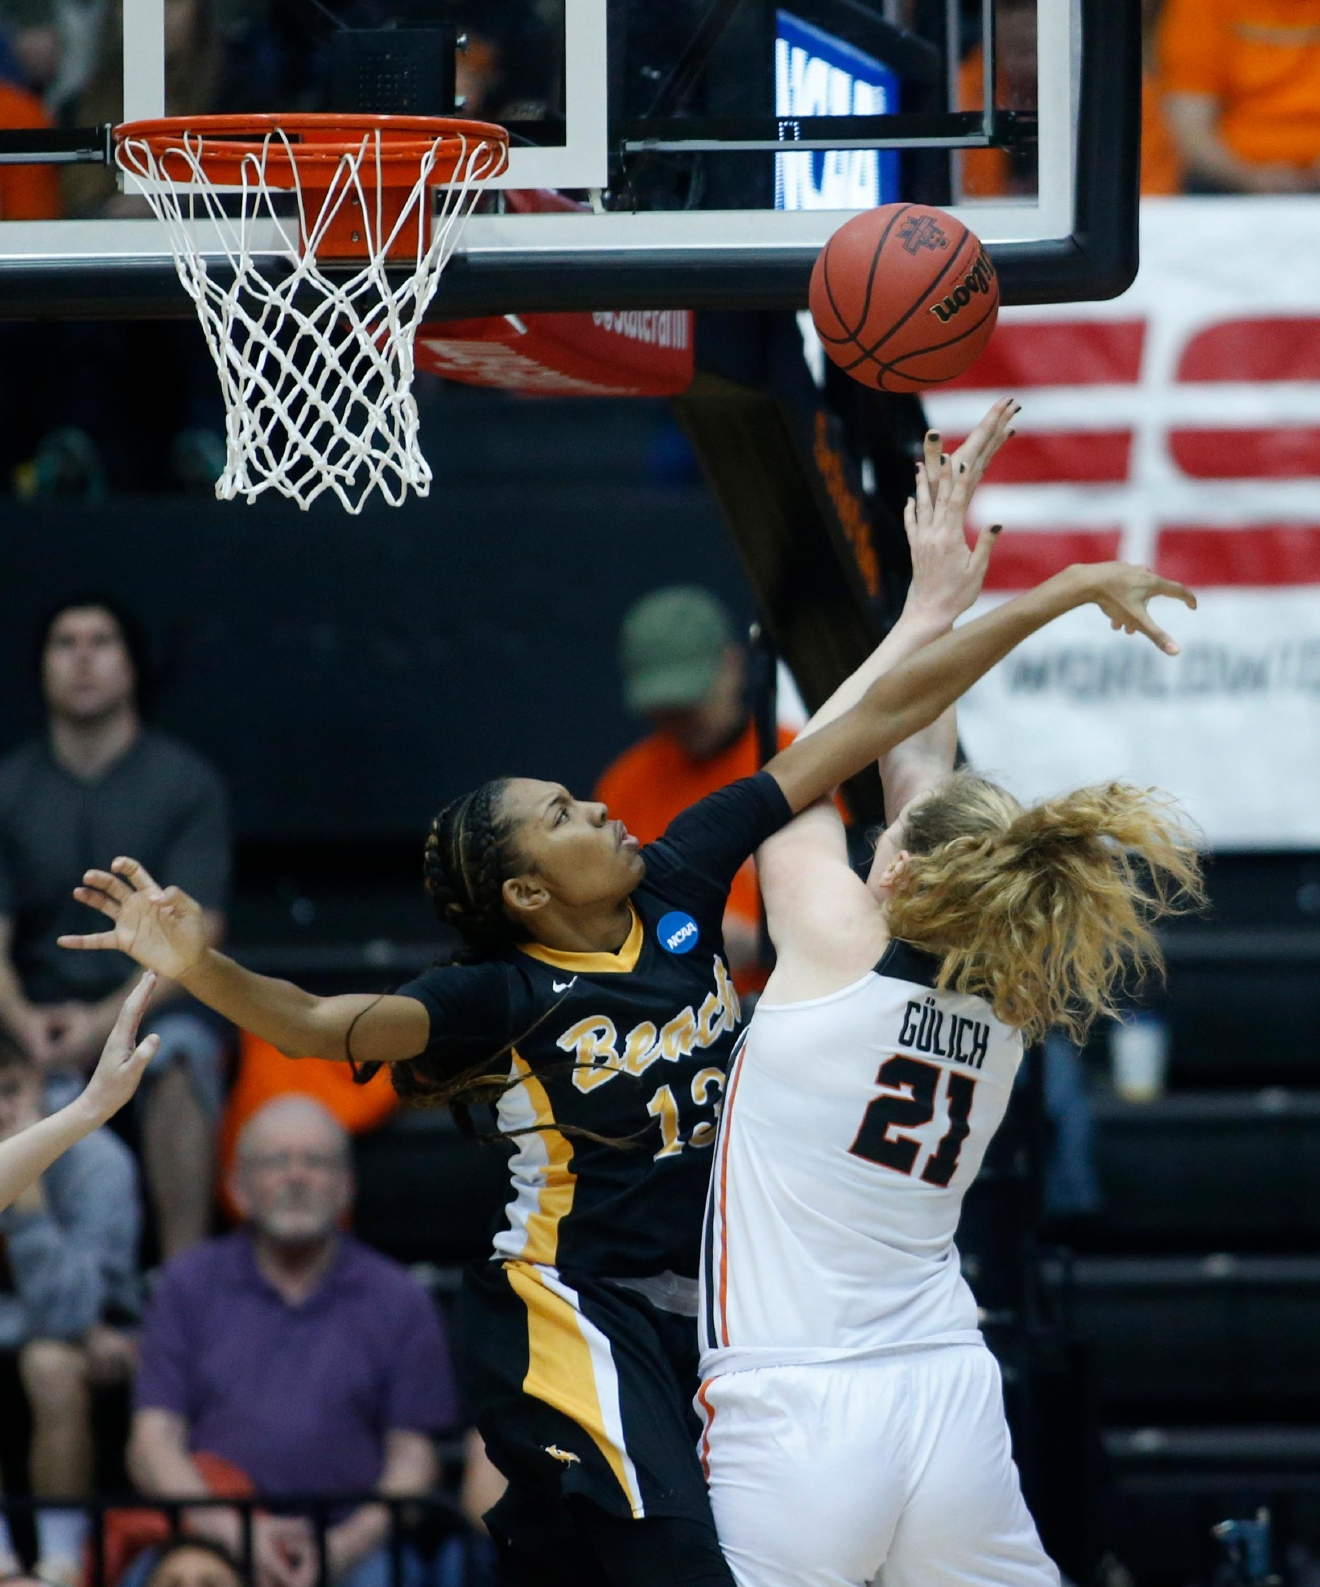 Long Beach State's Jewelyn Sawyer (13) fouls Oregon State's Marie Gulich (21) as she scores during the first half of a first-round game in the women's NCAA college basketball tournament Friday, March 17, 2017, in Corvallis, Ore. (AP Photo/Timothy J. Gonzalez)